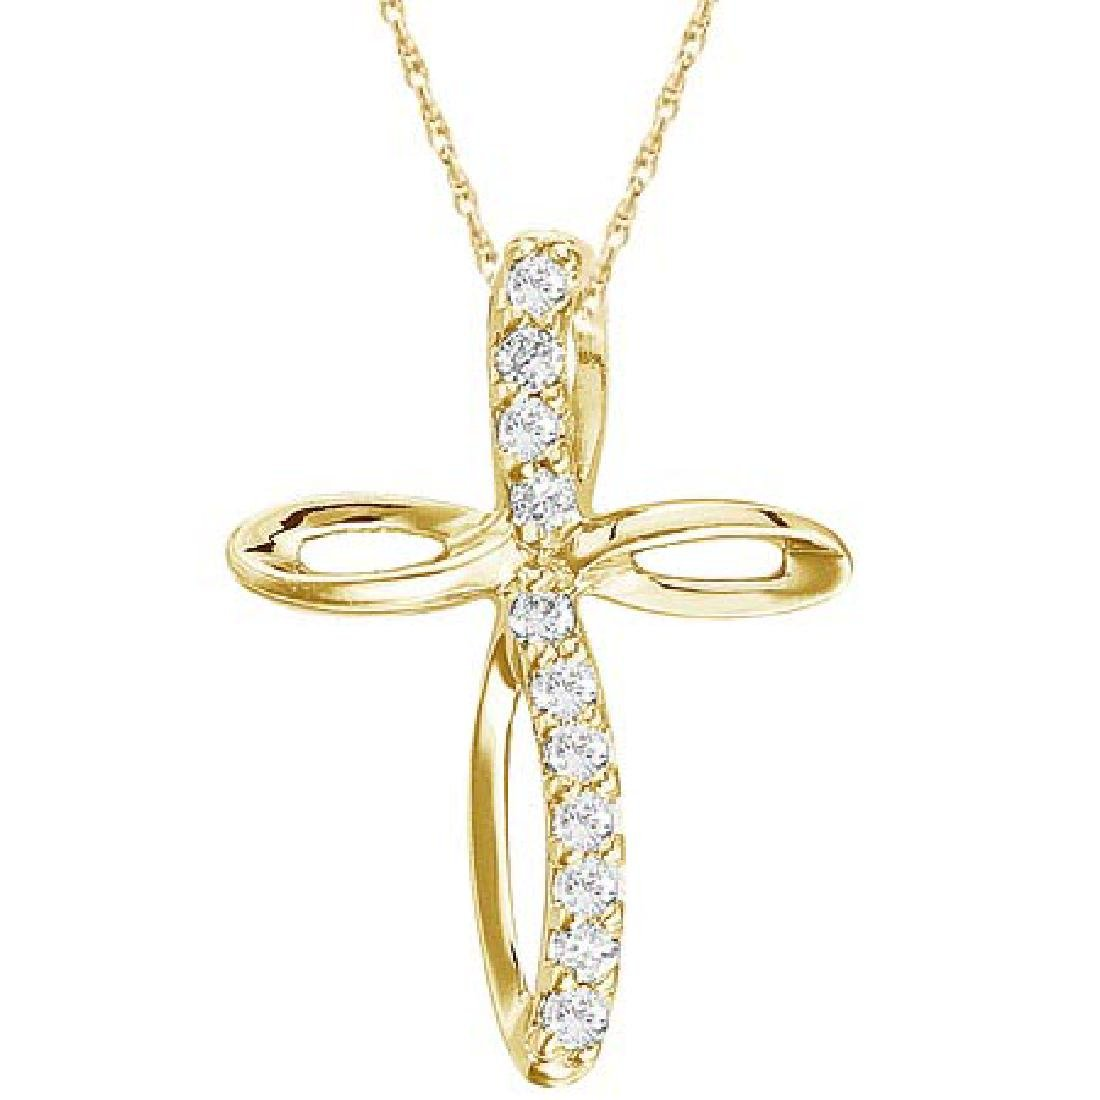 Swirl Diamond Cross Pendant Necklace in 14k Yellow Gold